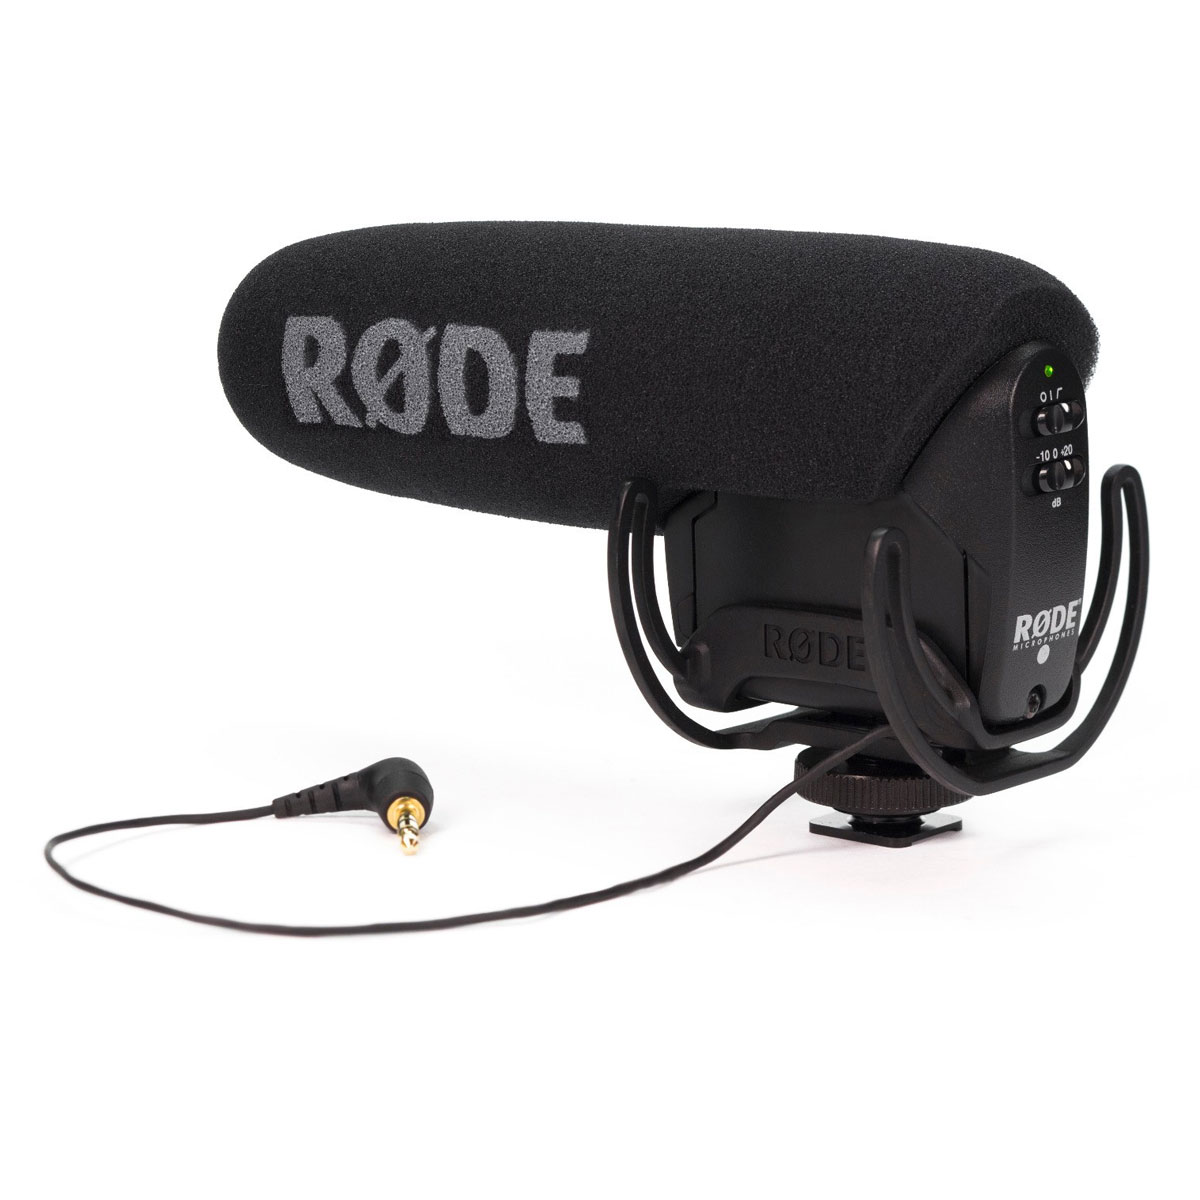 Rode VideoMic Pro Rycote - Micrófono cámaras video